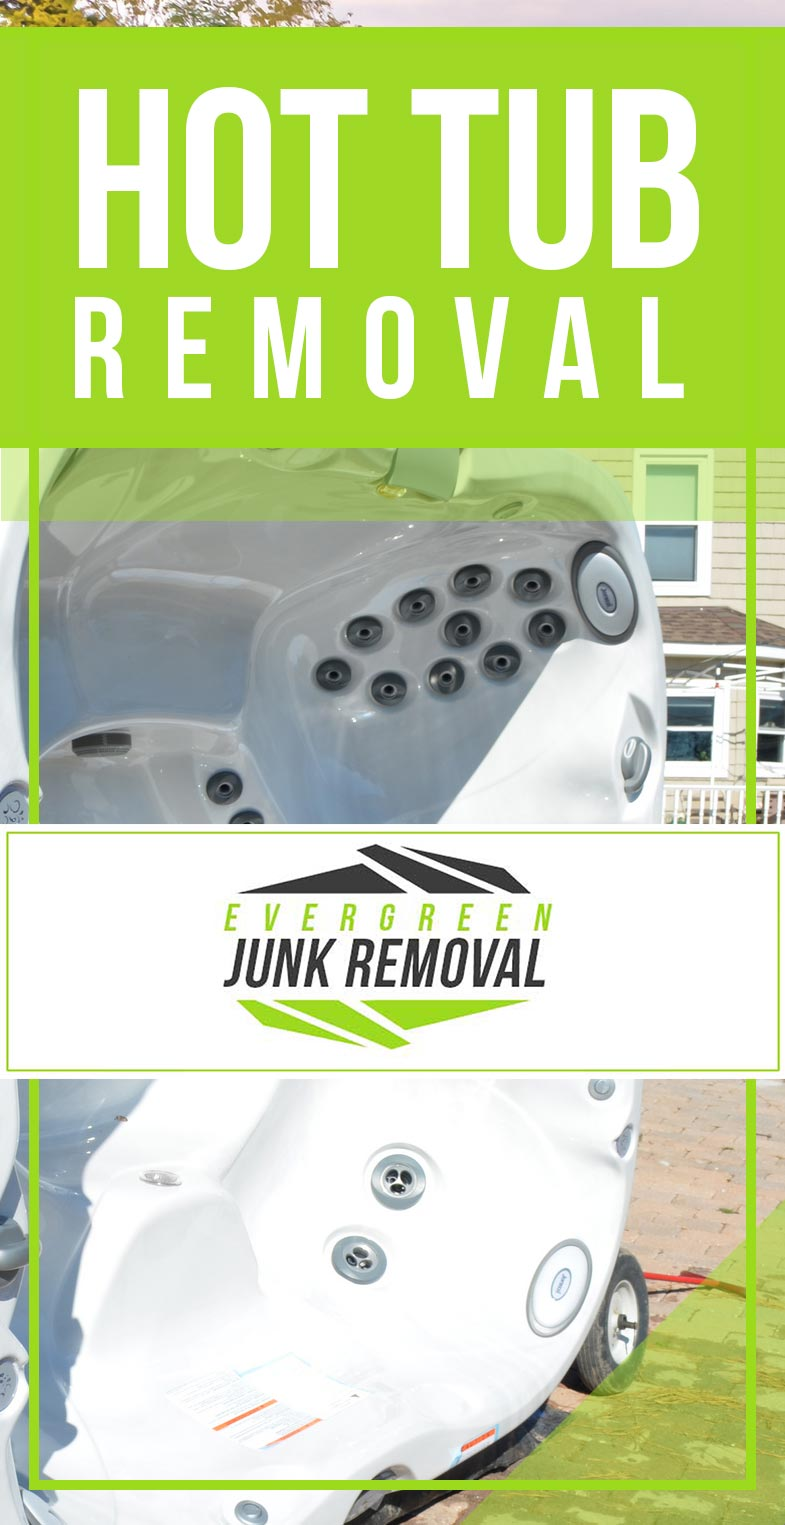 Township of Northville Hot Tub Removal